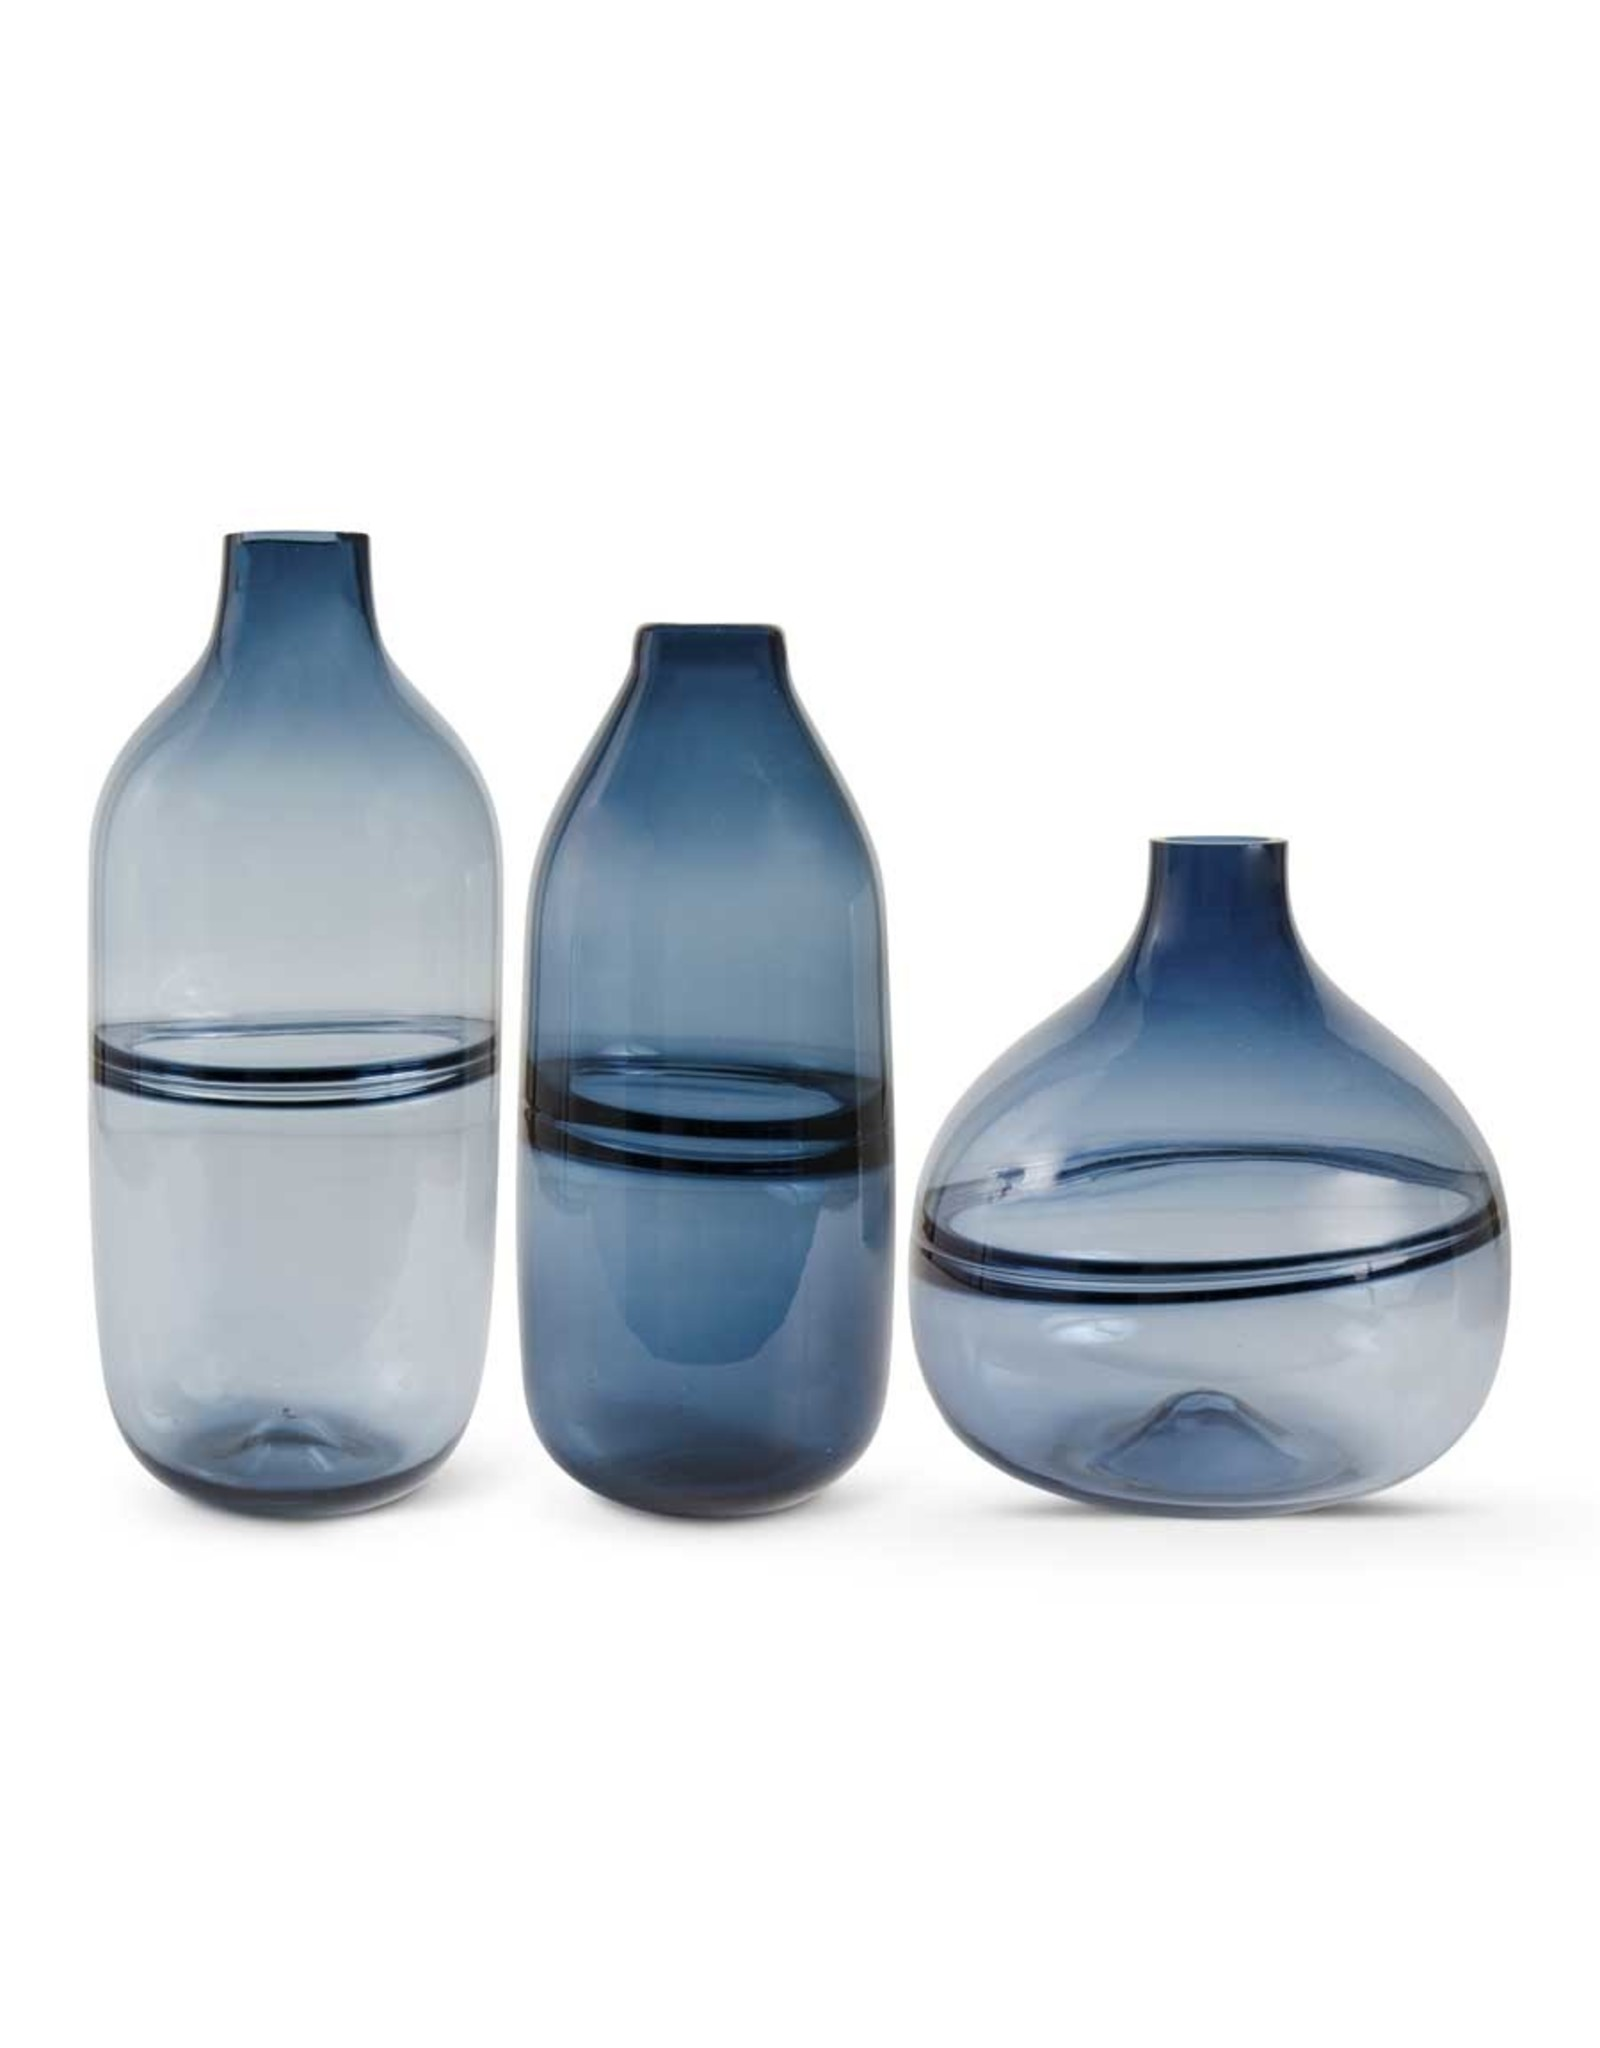 "K&K Interiors 14.5"" Purrisan Blue Glass Vase"